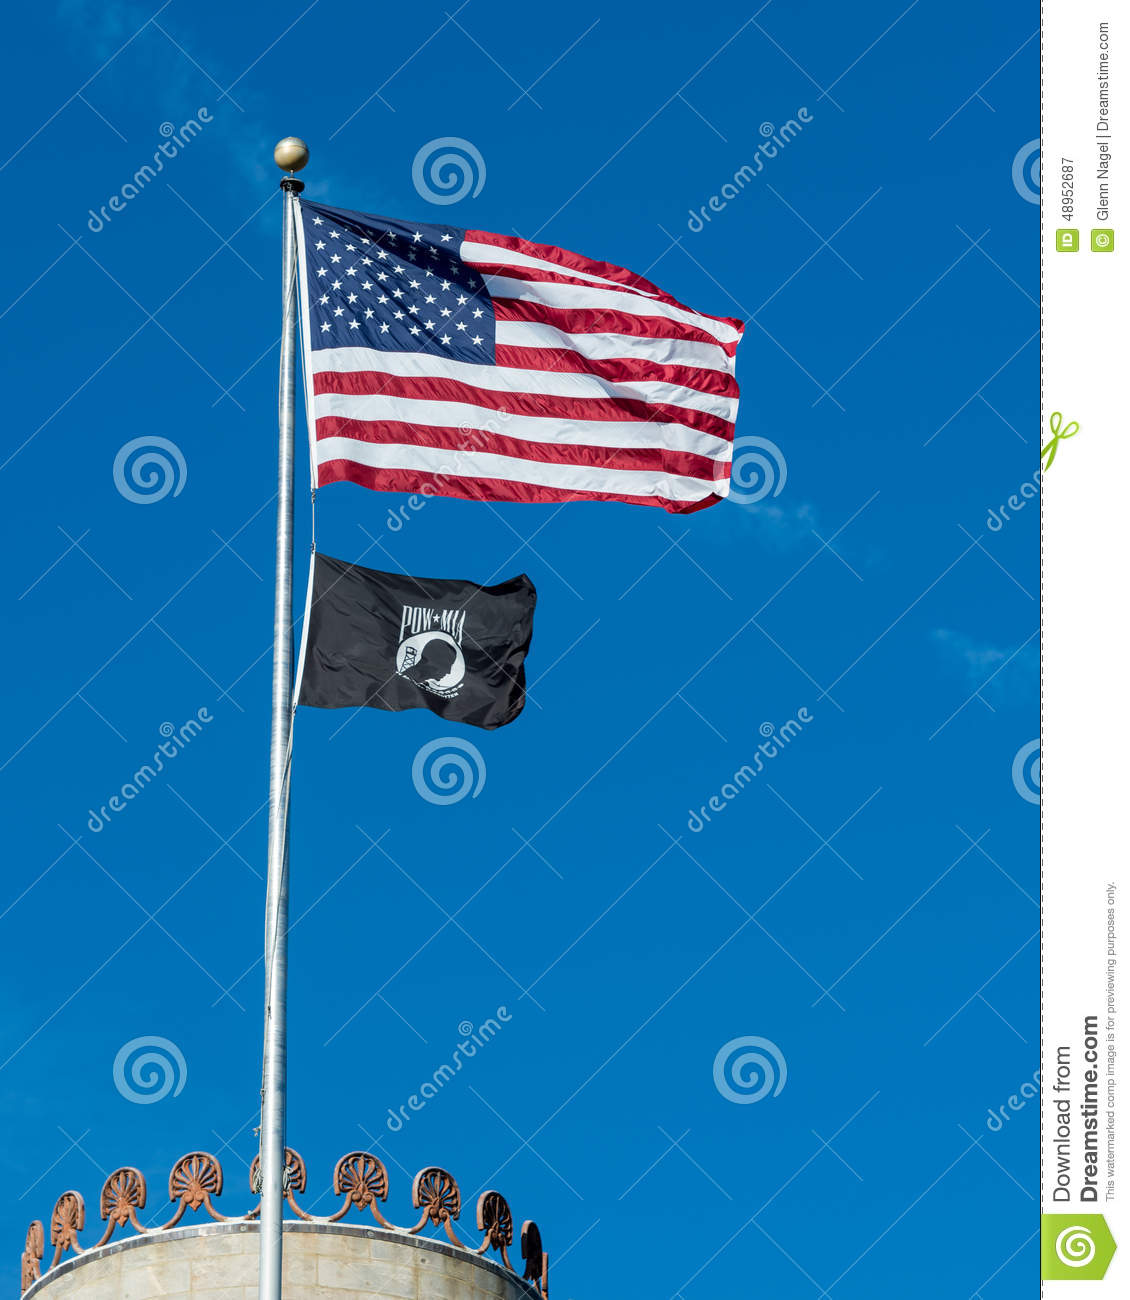 American And POW/MIA Flags Stock Photo - Image: 48952687